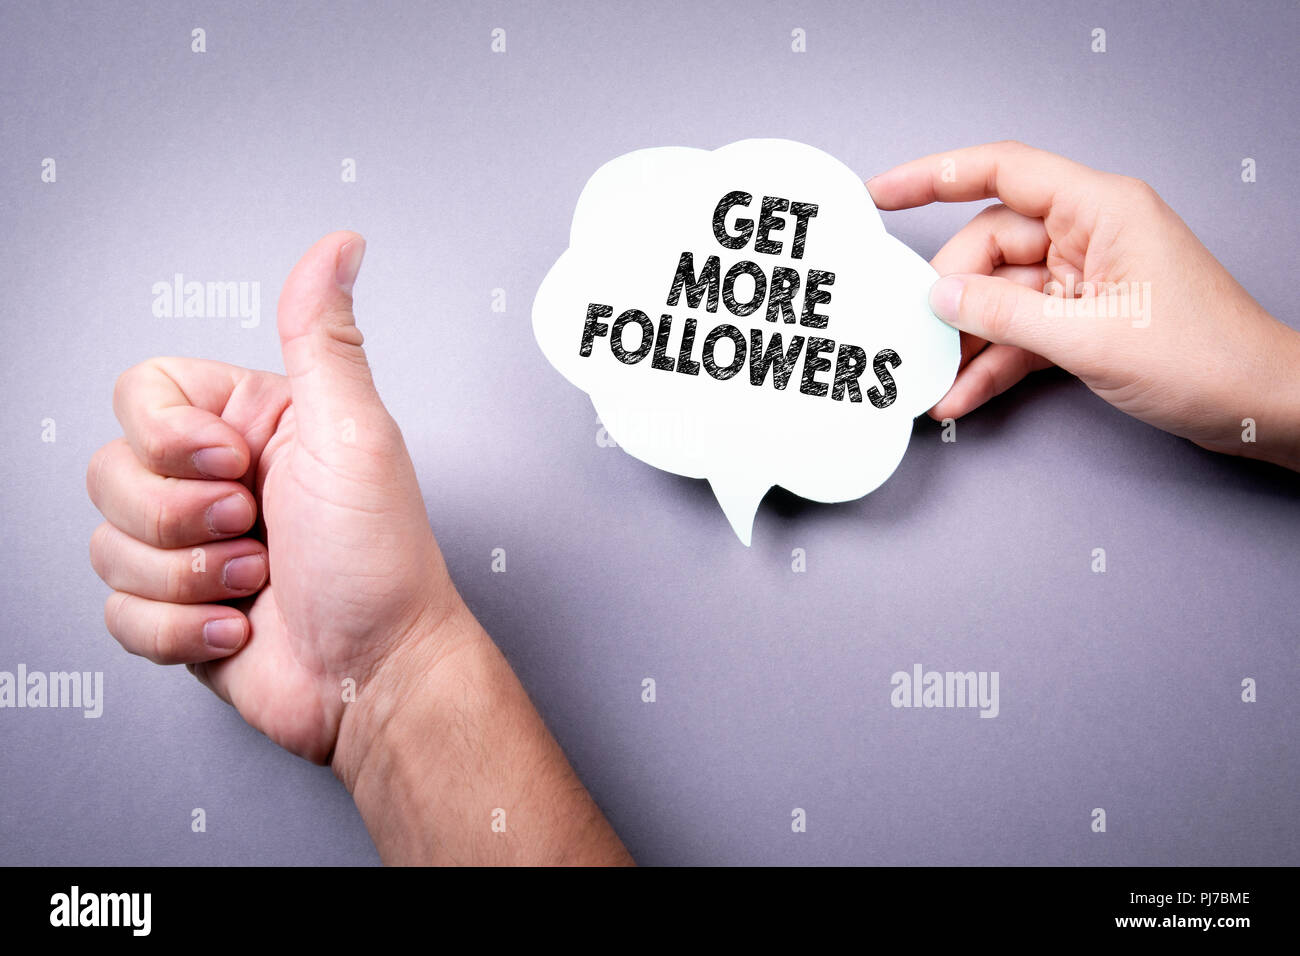 Get More Followers concept - Stock Image